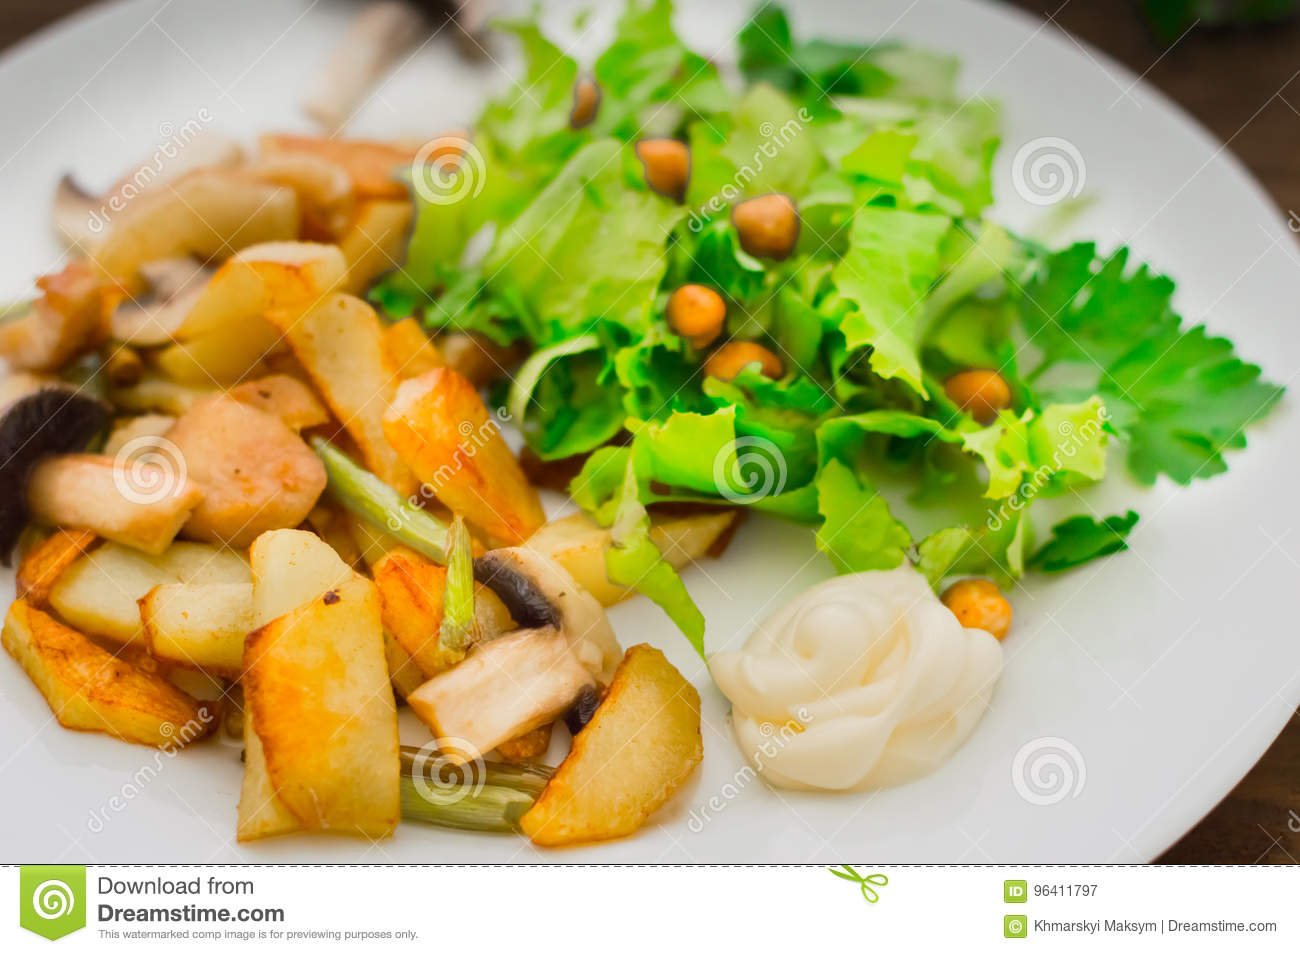 Fried potatoes roasted with wild mushrooms on white plate and green lettuce on wooden table background. Wooden background. Top vie